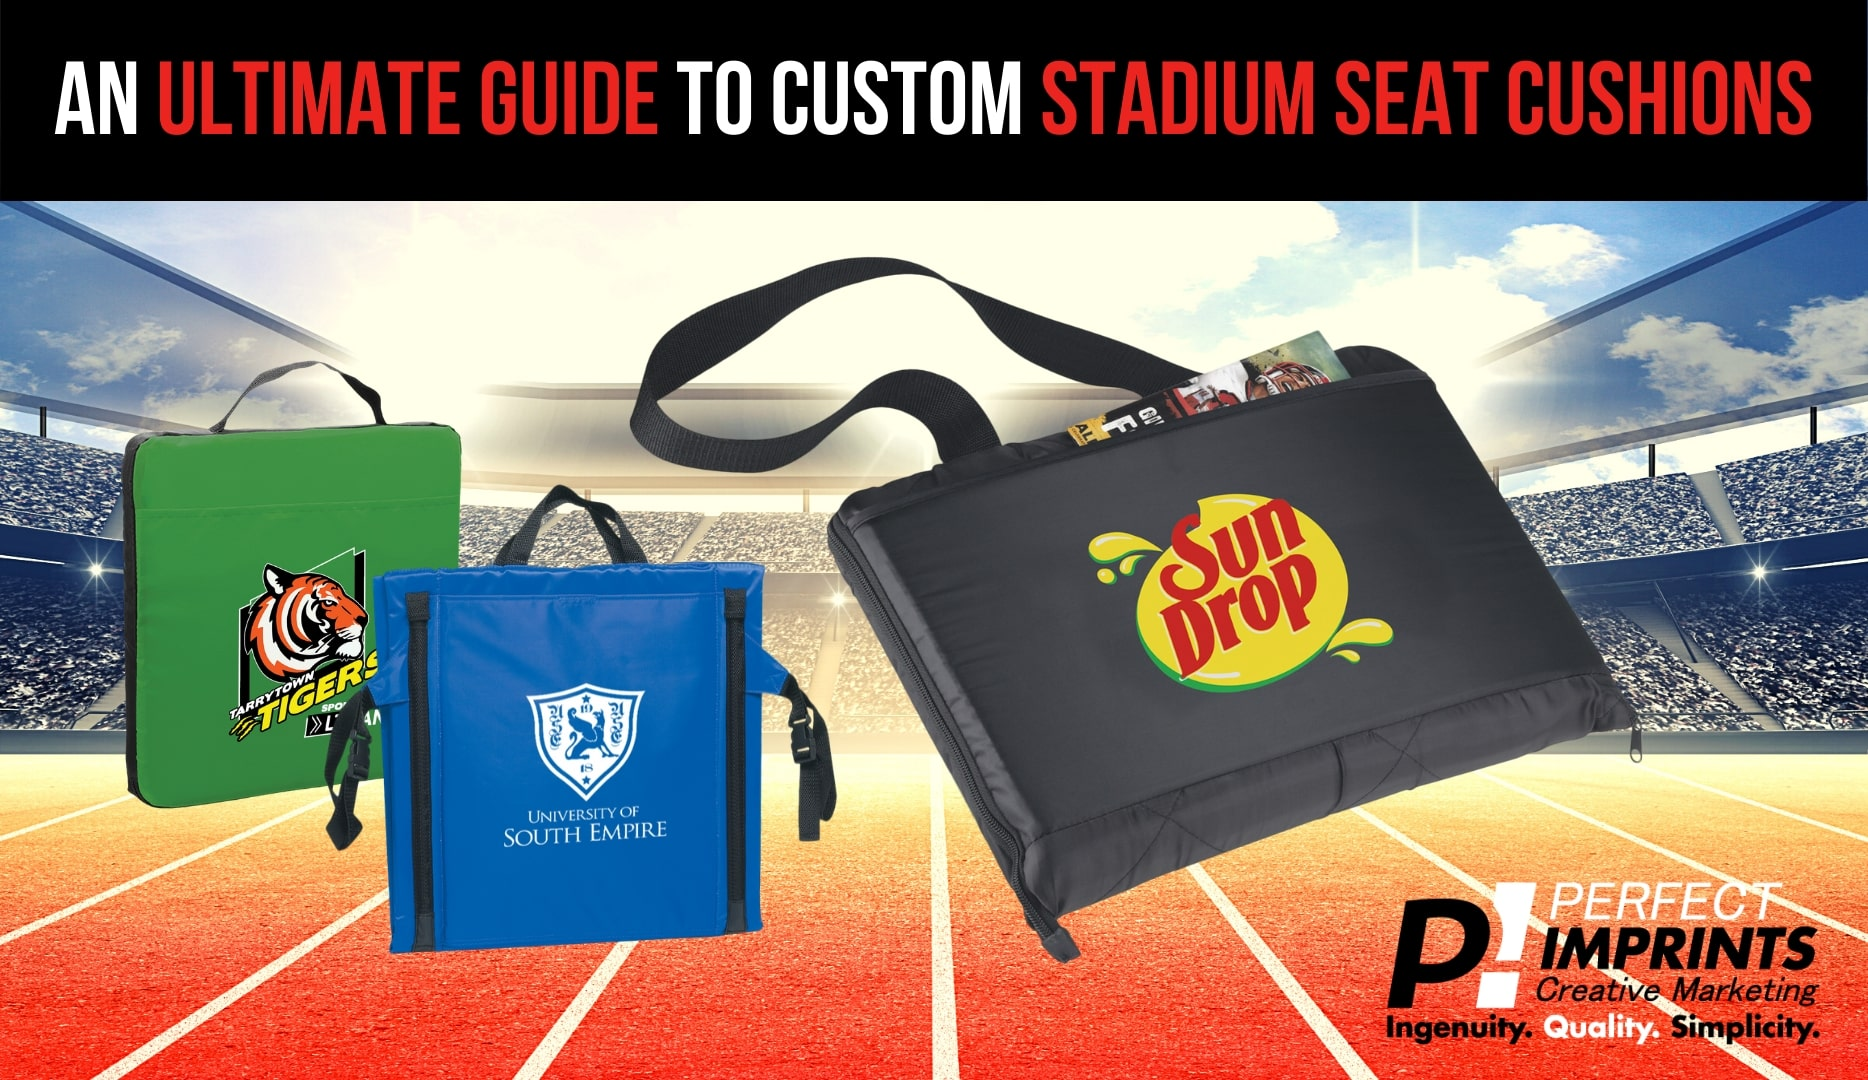 A Guide To Custom Stadium Seat Cushions